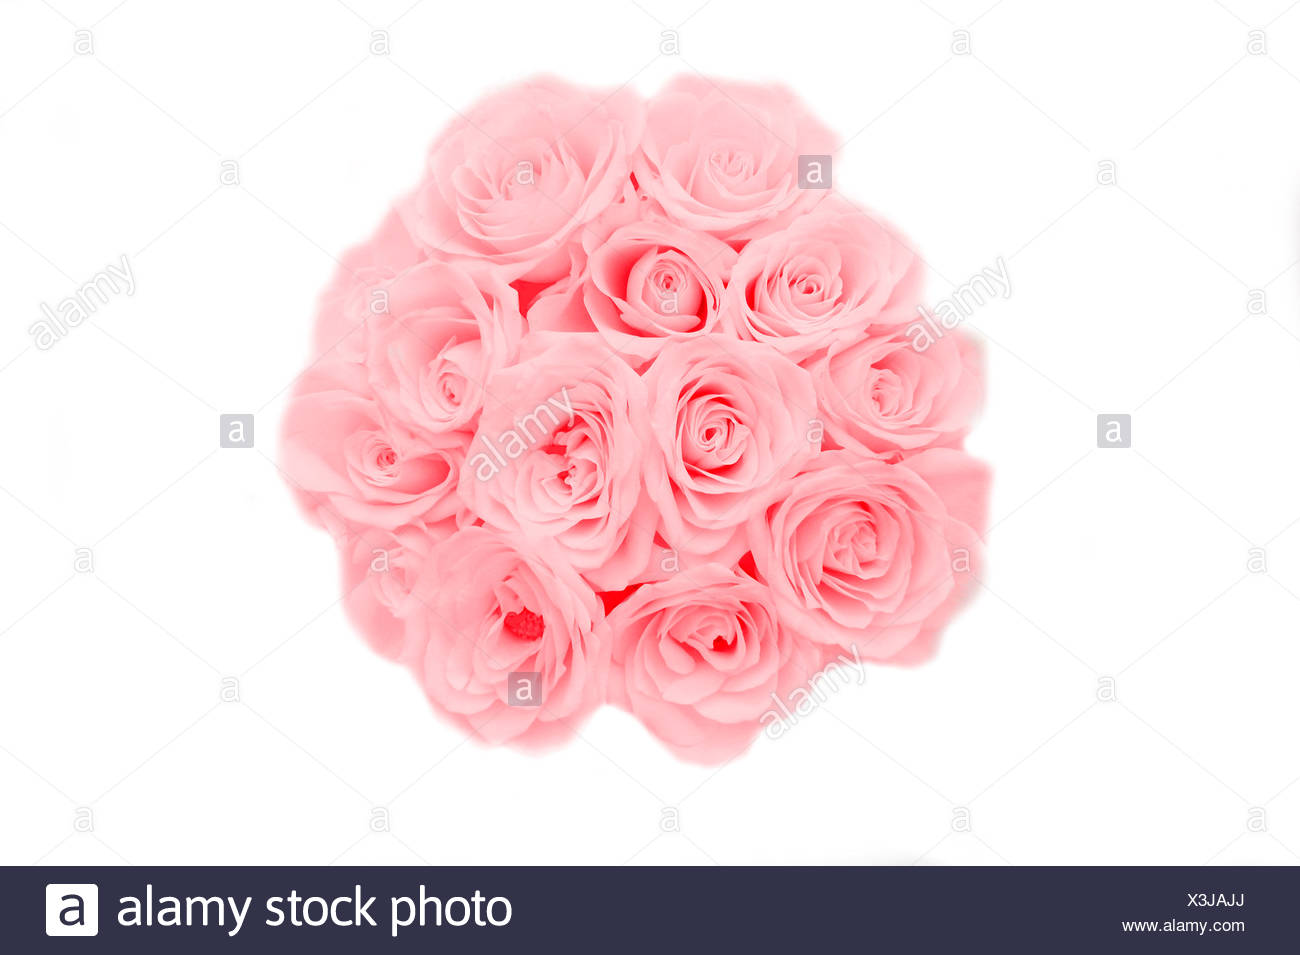 Pink Bunch Of Roses Stock Photo 277613354 Alamy